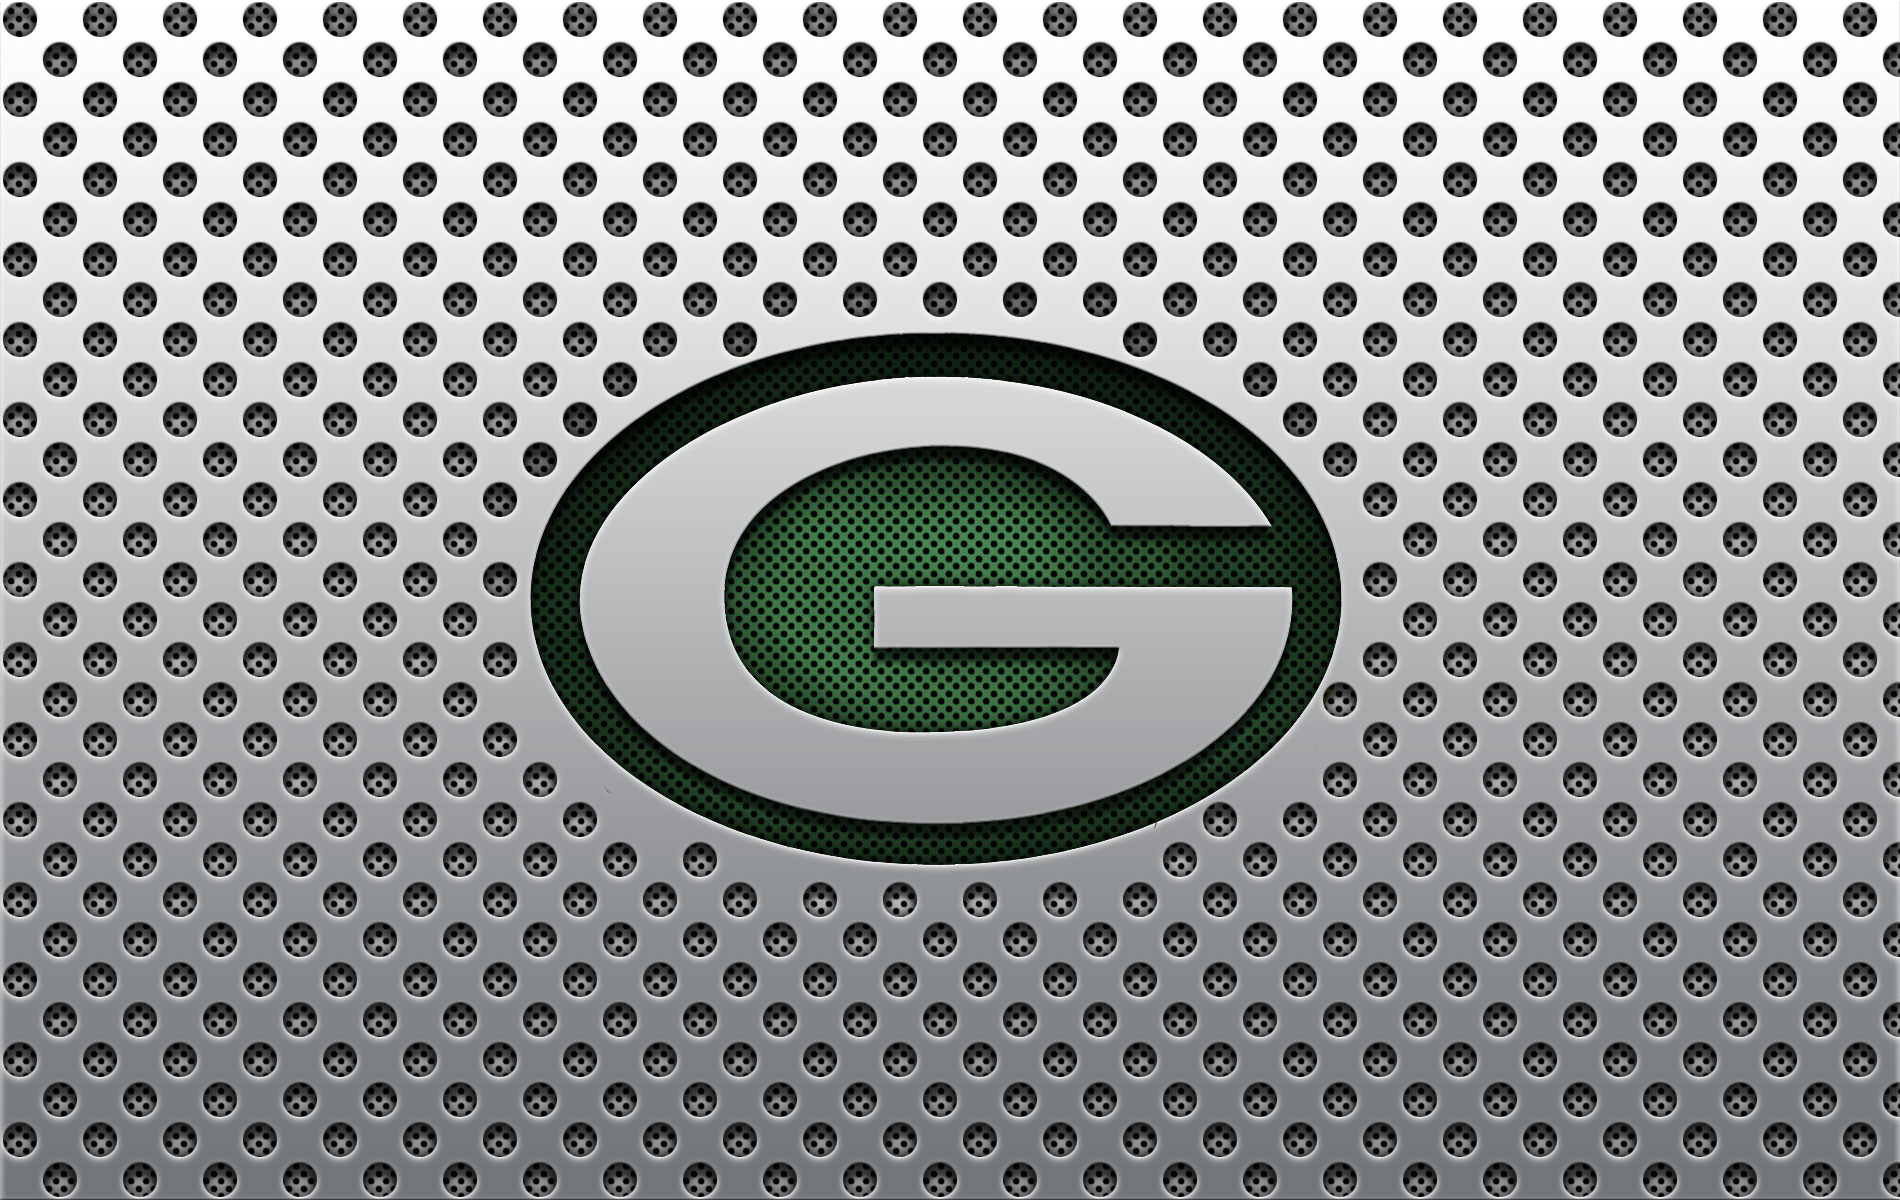 Green Bay Packers Logo Wallpaper. By Justin, on September 12, 2010